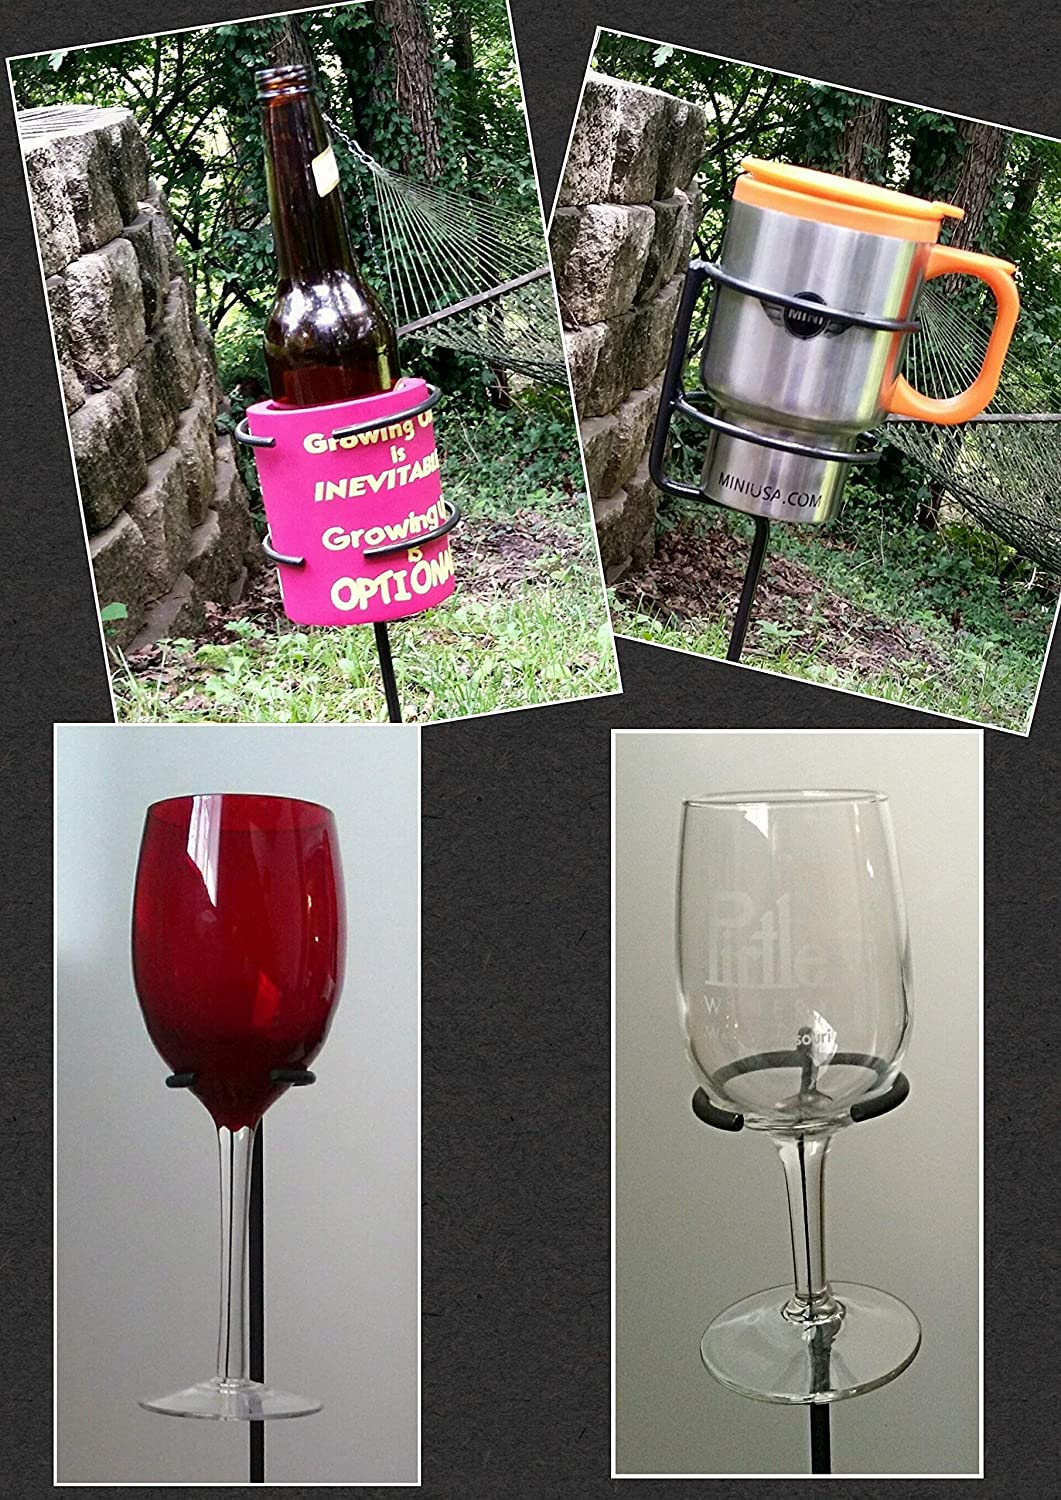 Small Party Package 2 Outdoor Wineglass & 2 Universal Cup Holders (Beer, Mug, or Cup) - Blacksmith Made